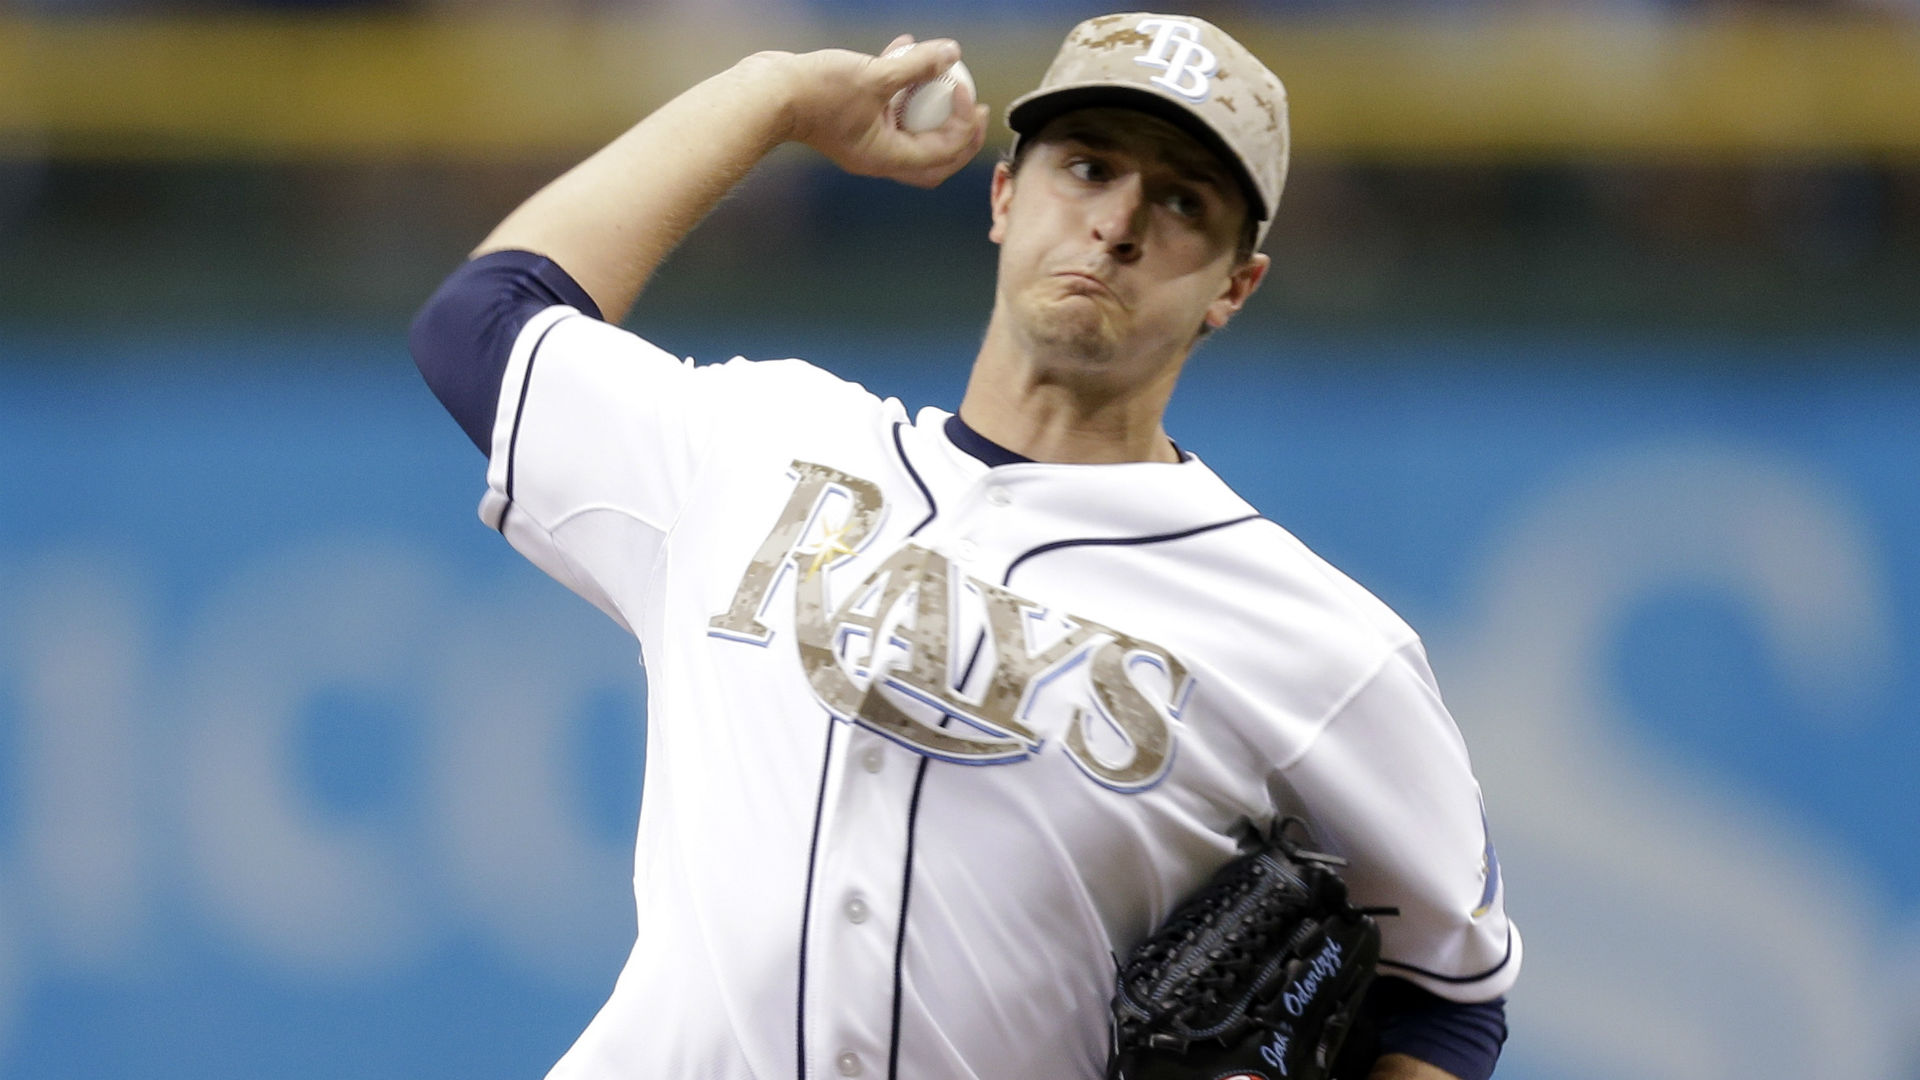 Fantasy baseball sleepers: Rays' Odorizzi finally gets his chance